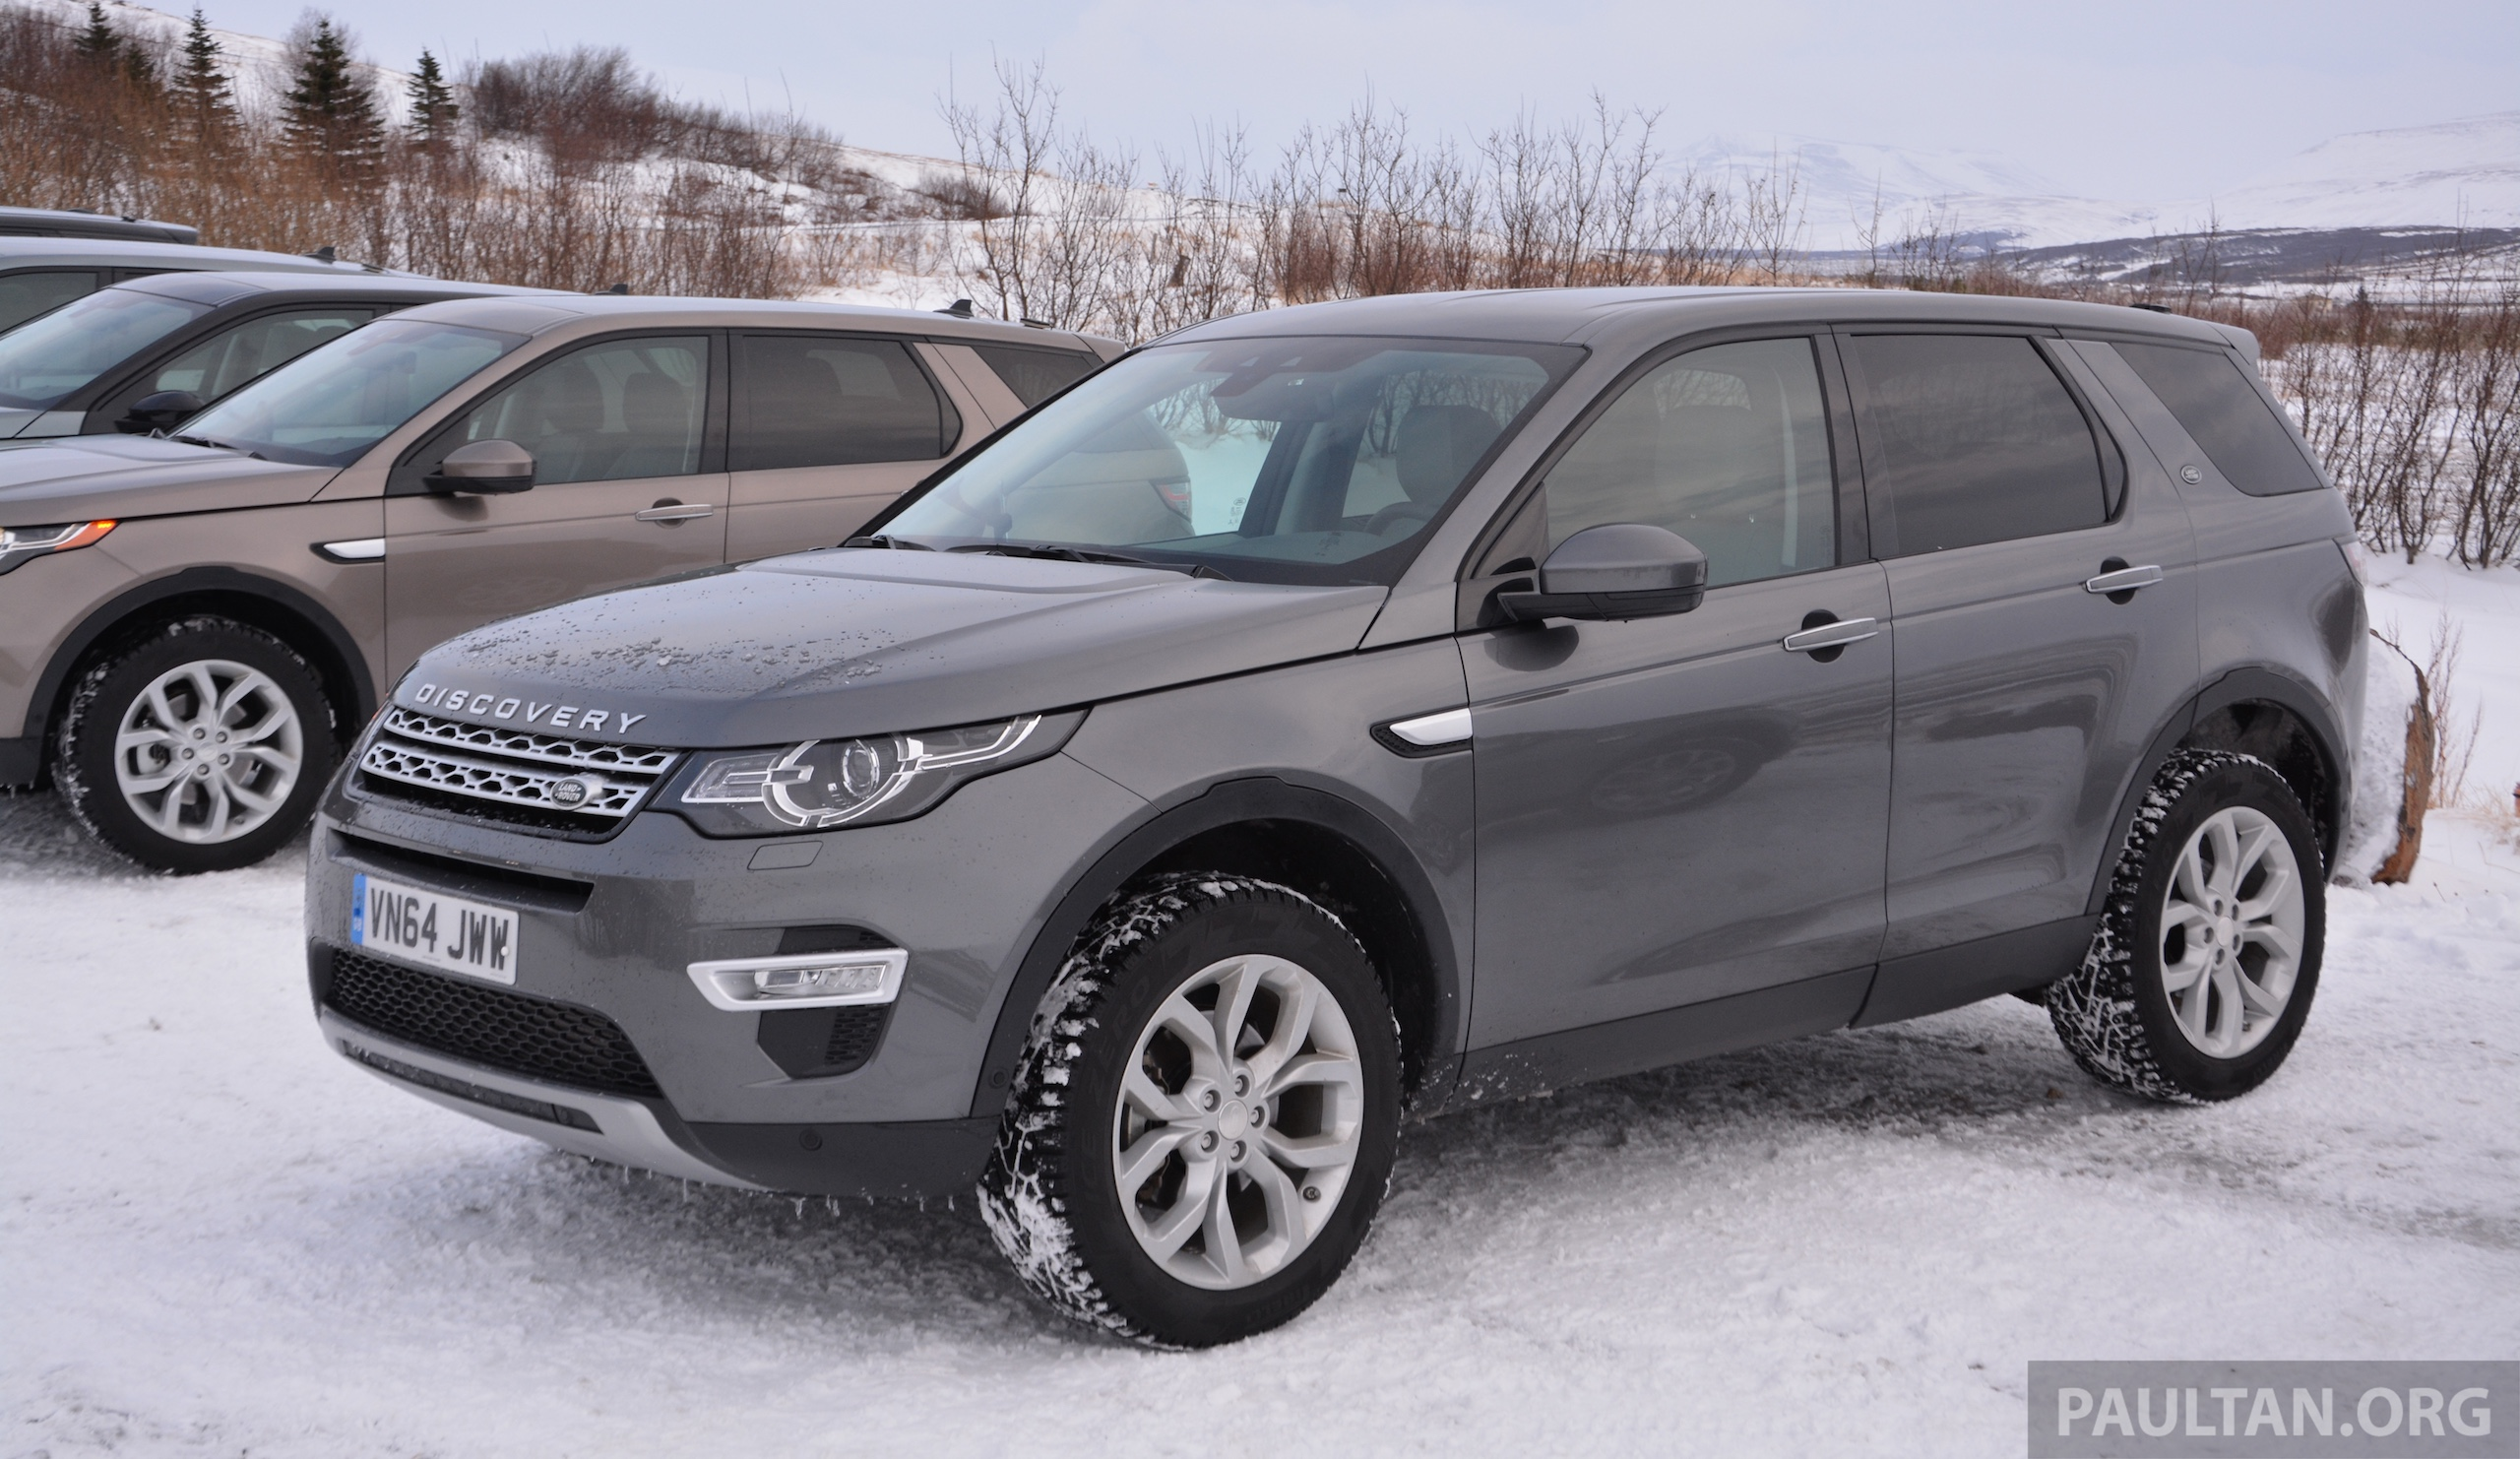 Land Rover Discovery Sport >> DRIVEN: L550 Land Rover Discovery Sport in Iceland Paul Tan - Image 344844